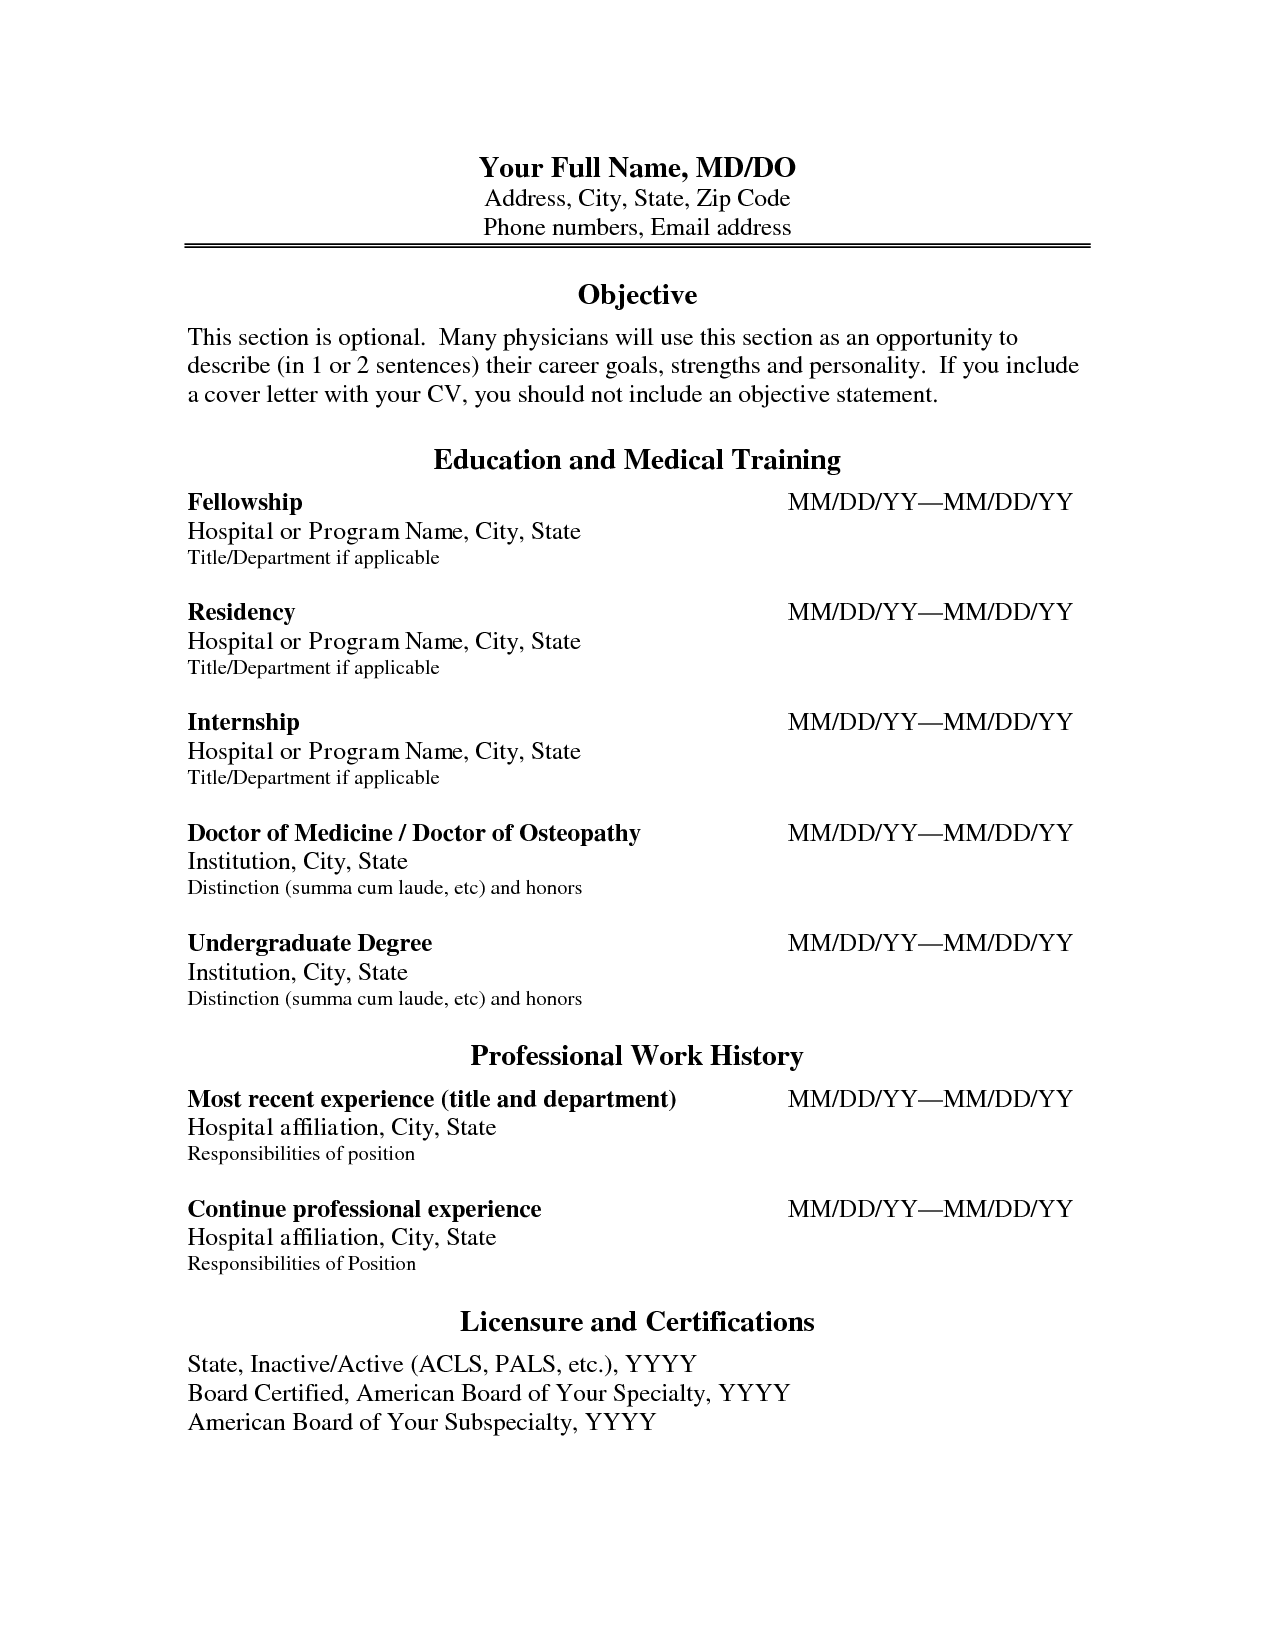 Cv Format Physician Physician Assistant Resume And Curriculum  Medical Resume Examples